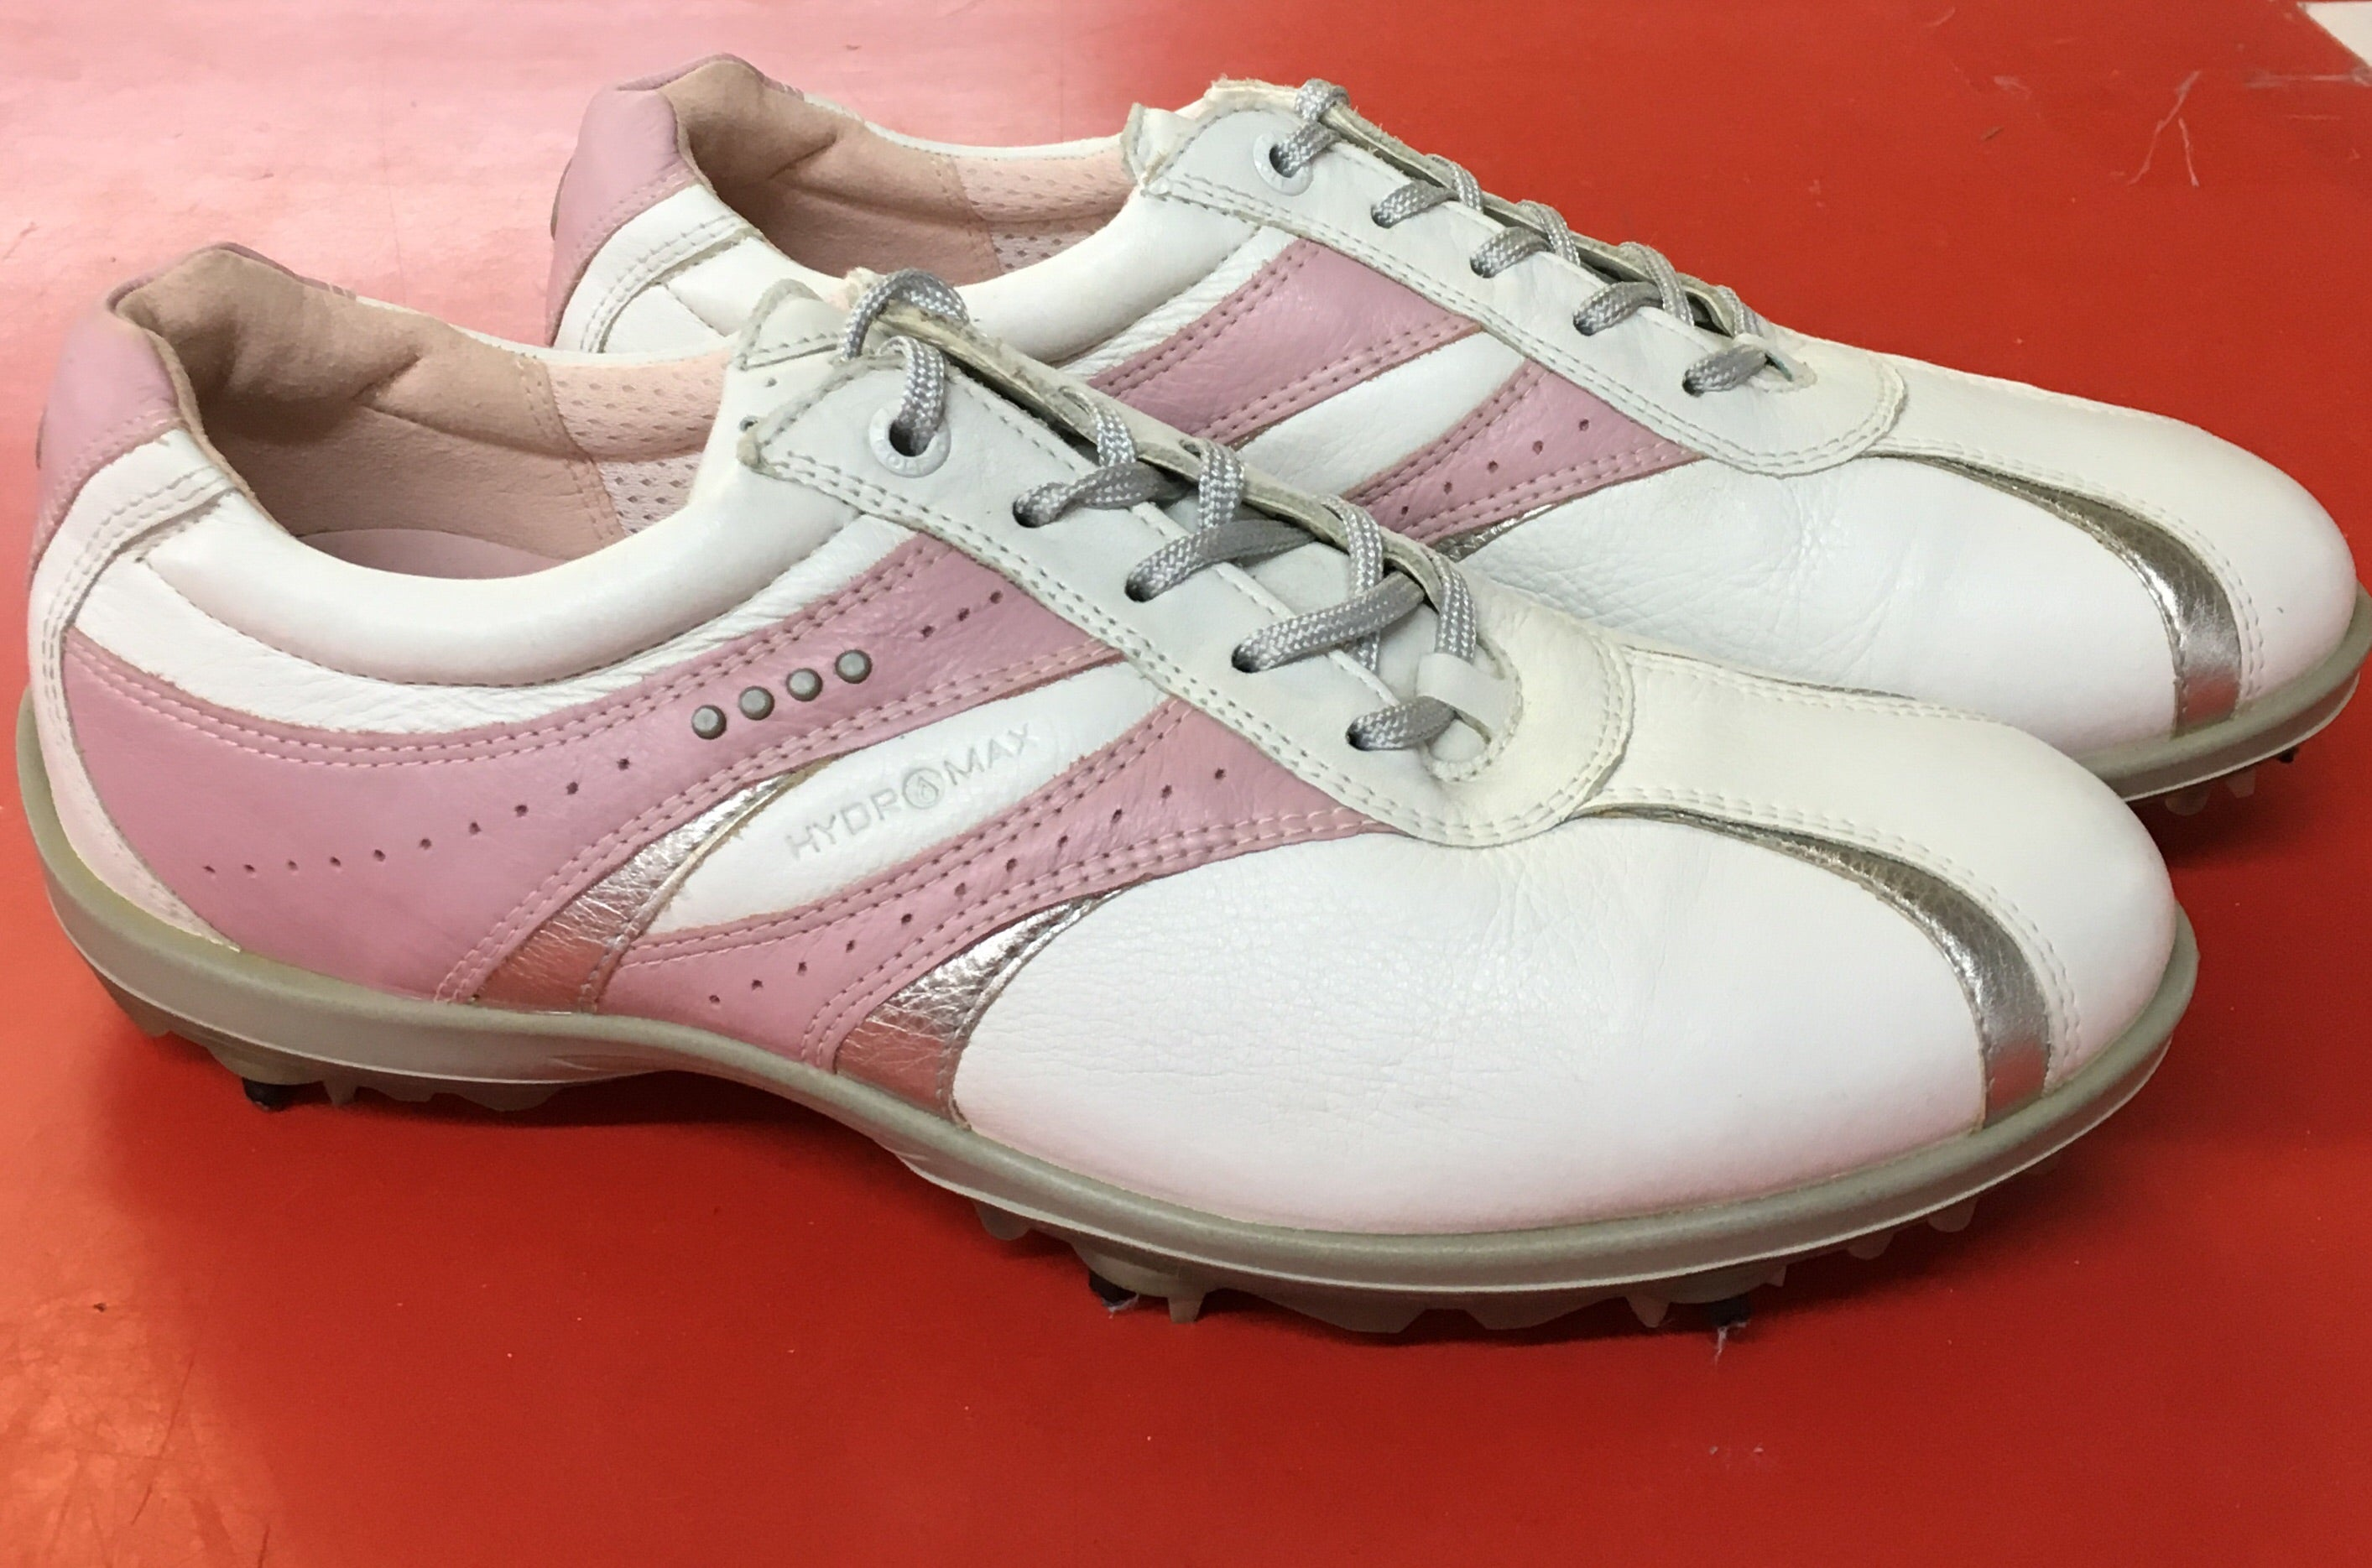 e9643f430908 Women s ECCO Golf Shoes SZ. 9-9.5 US EU 40 White Pink Silver Hydo~Max –  Shoodog.com